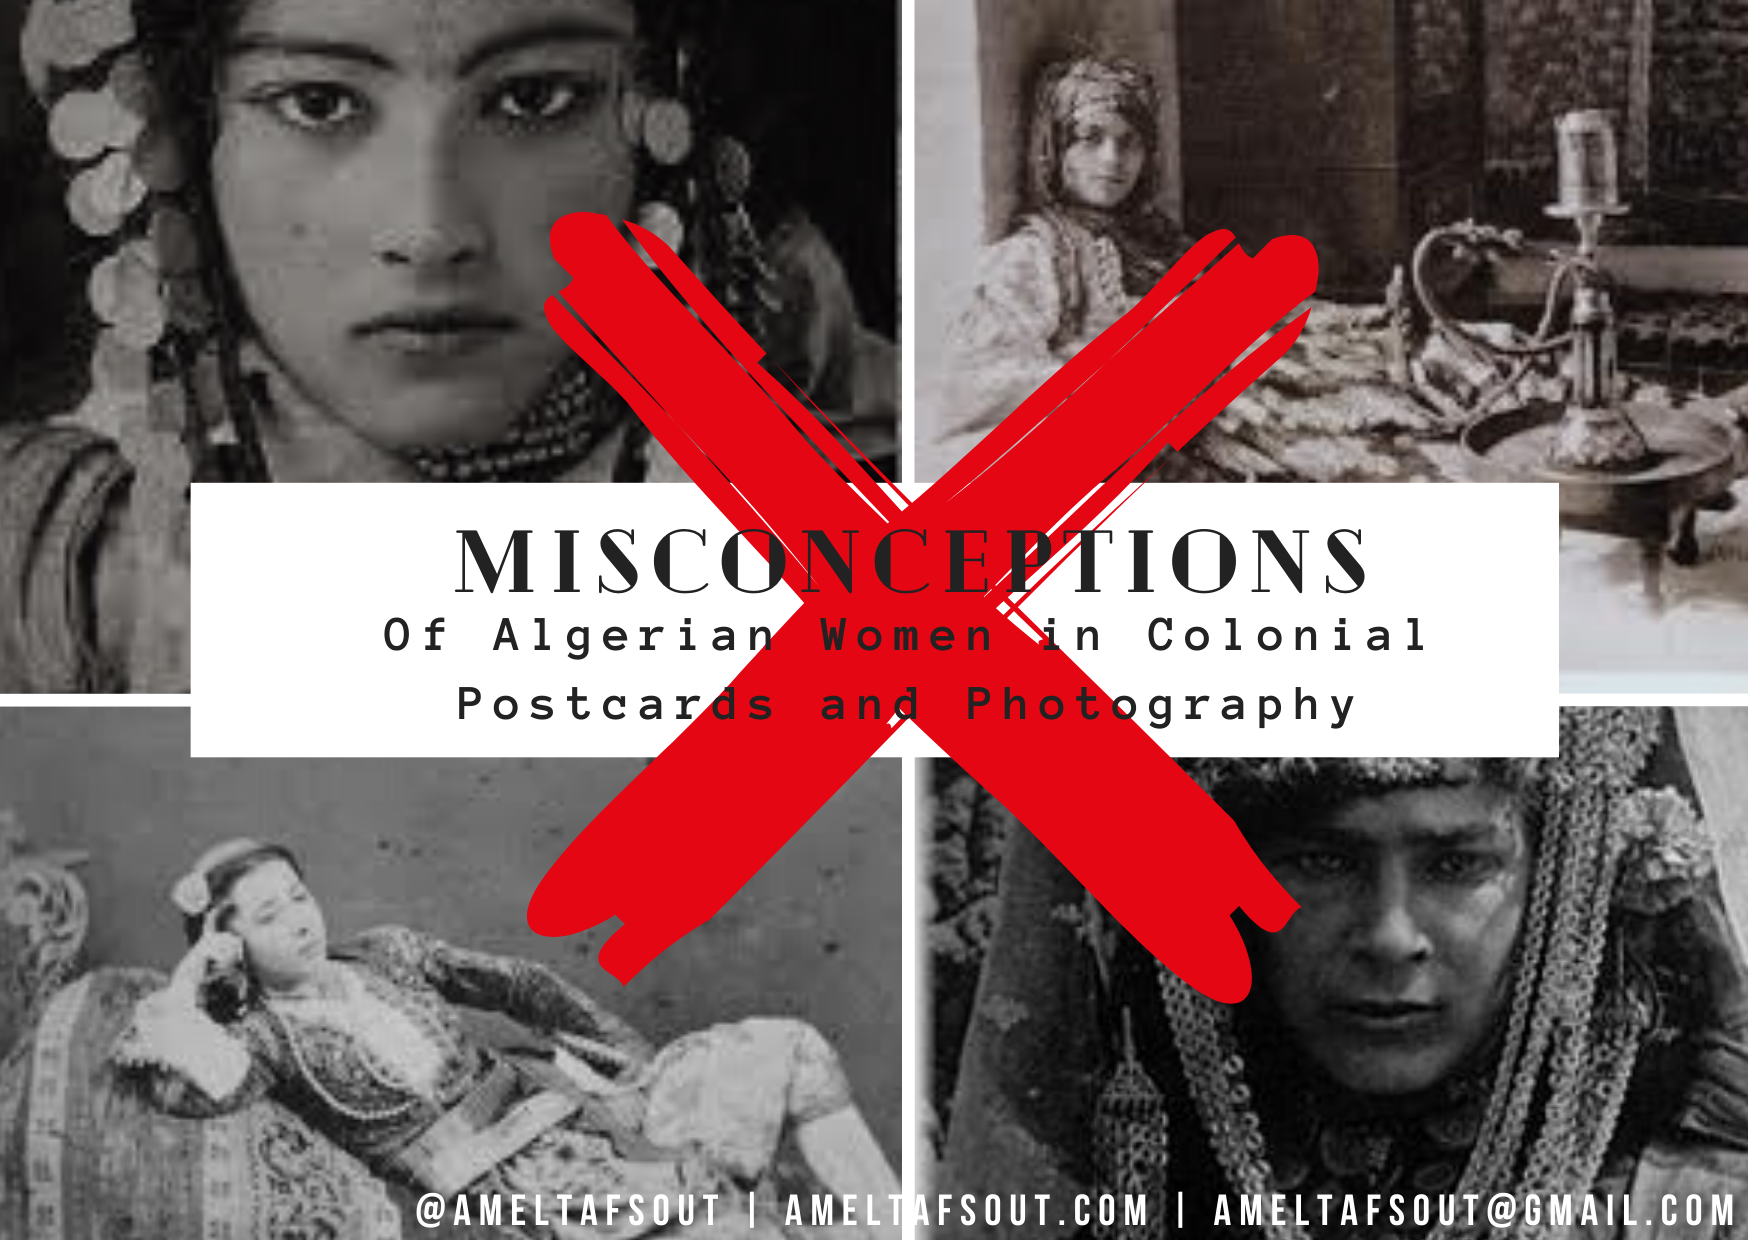 Black and White Photo Flyer for Misconceptions